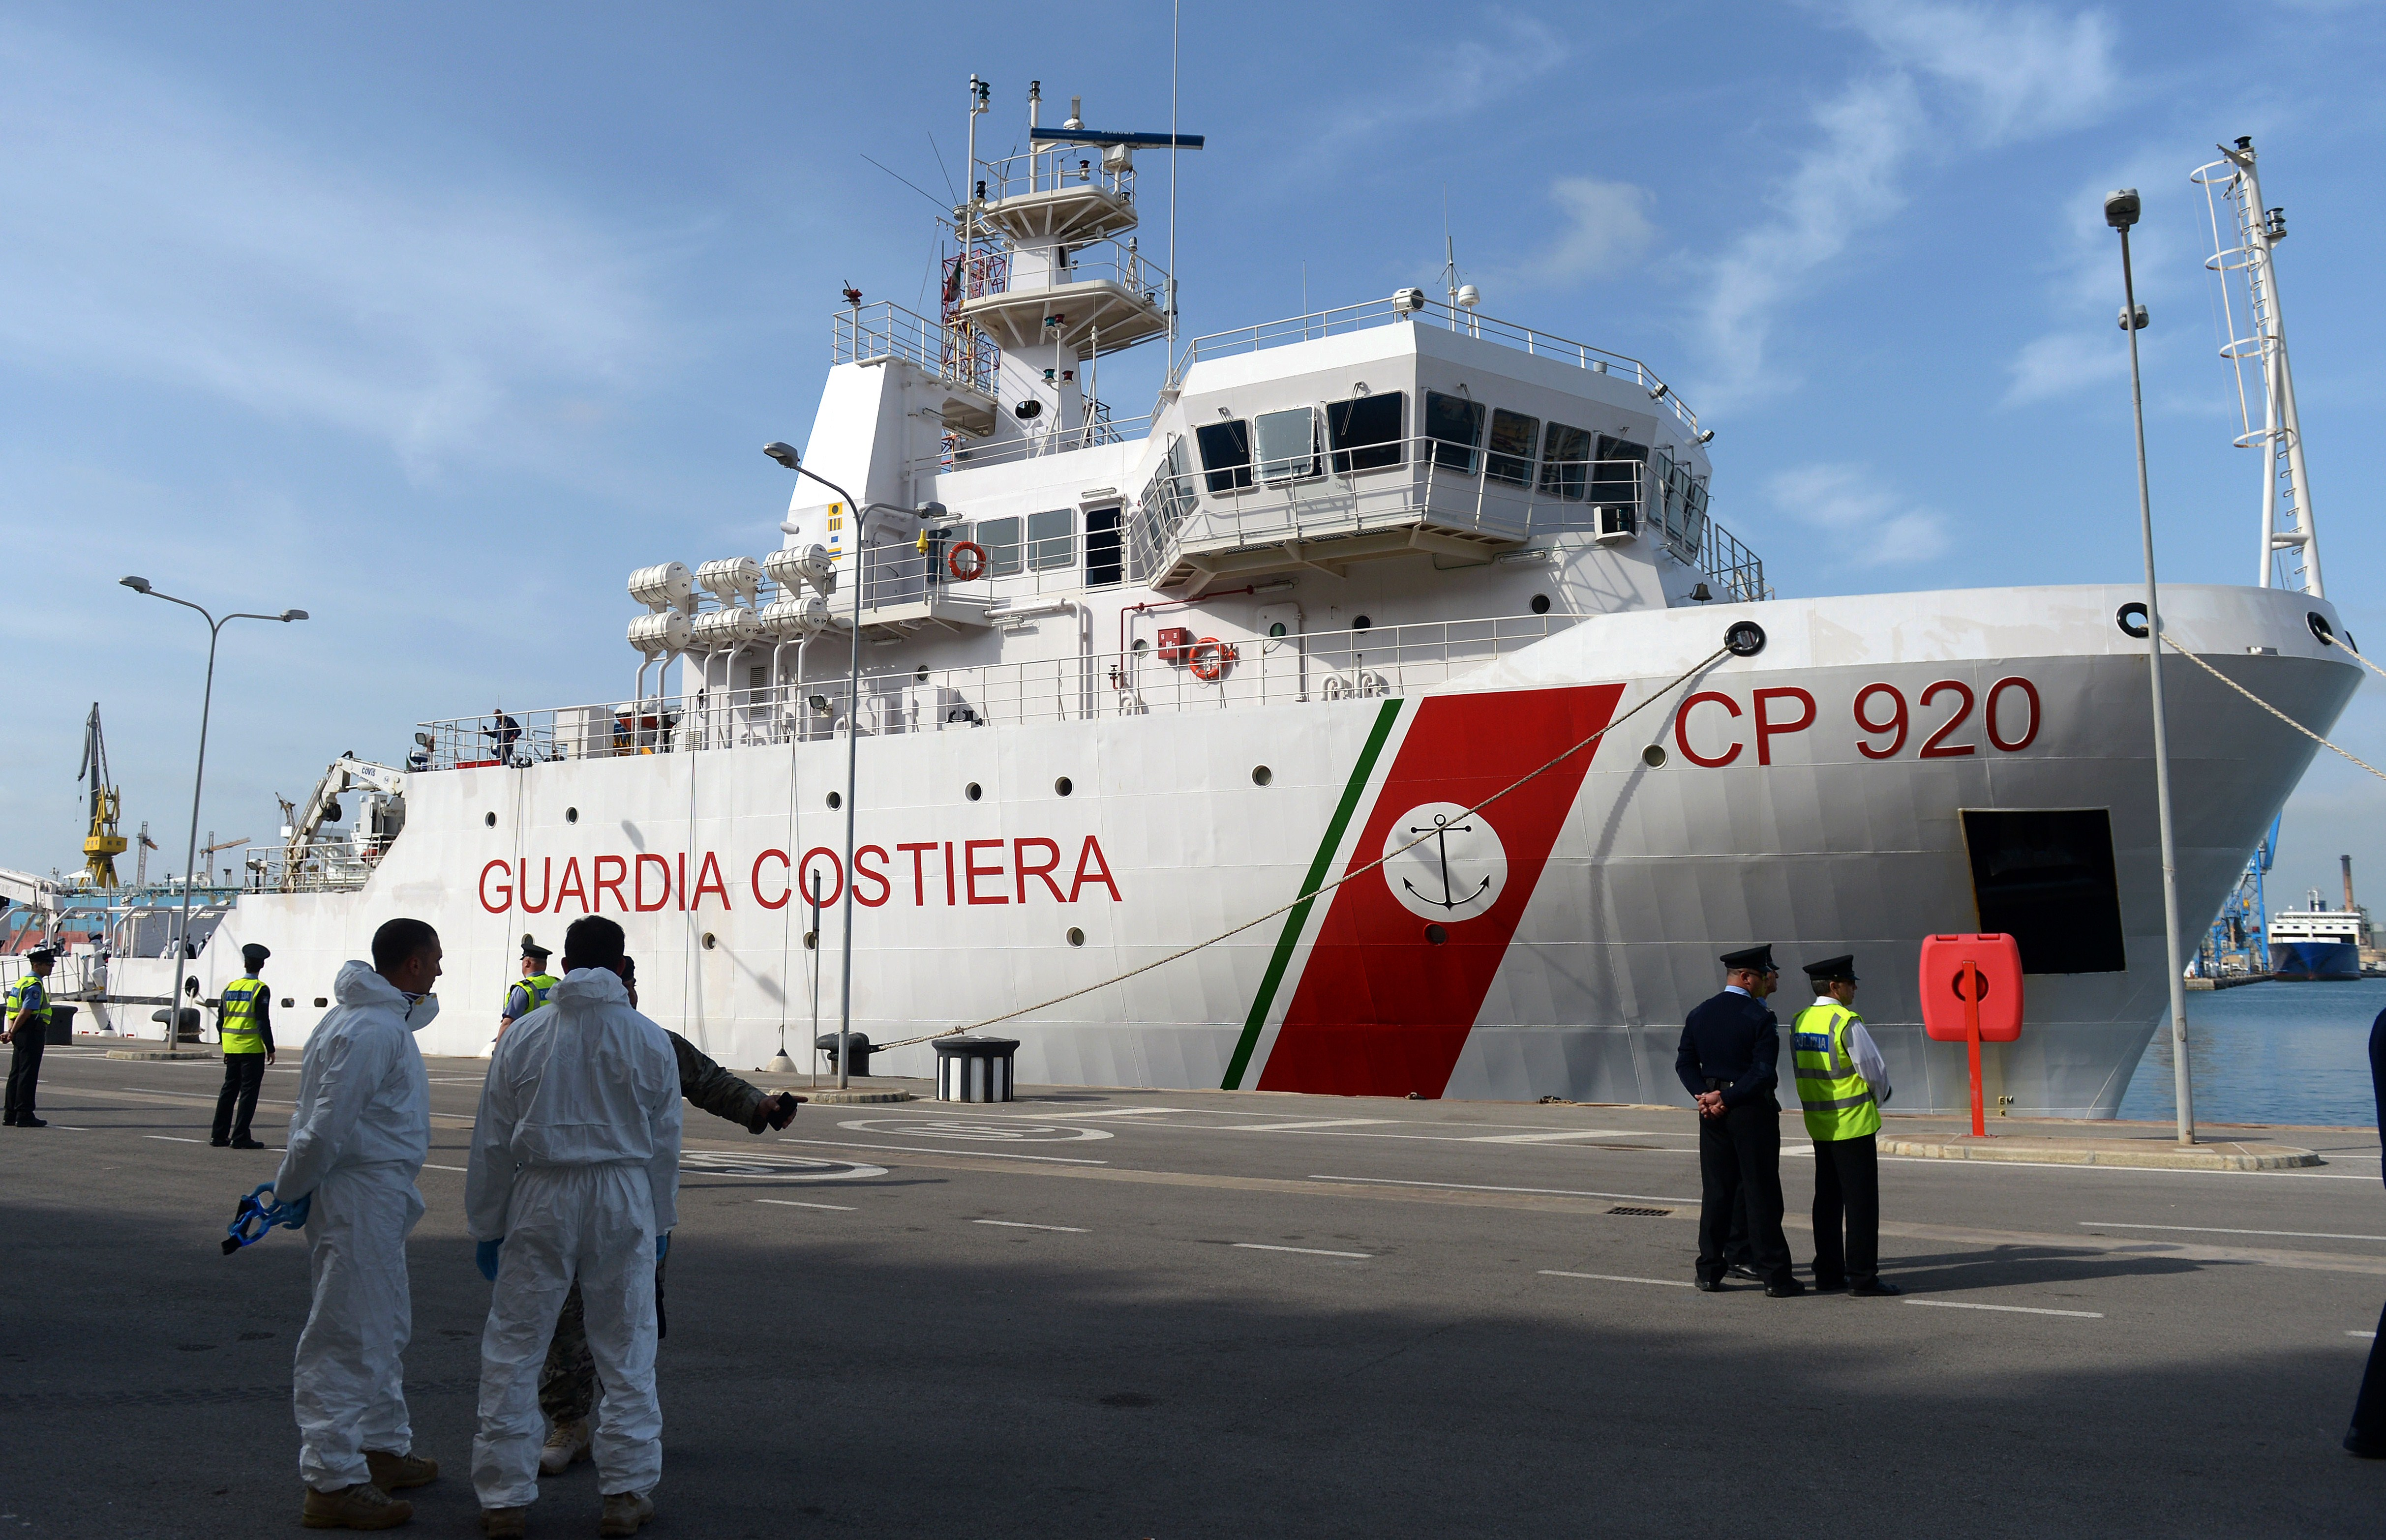 Italian Coast Guard vessel Bruno Gregoretti sits in the dock at Boiler Wharf, Senglea in Malta on April 20, 2015, after bringing survivors and the bodies of victims of a boat capsize.  (Getty)